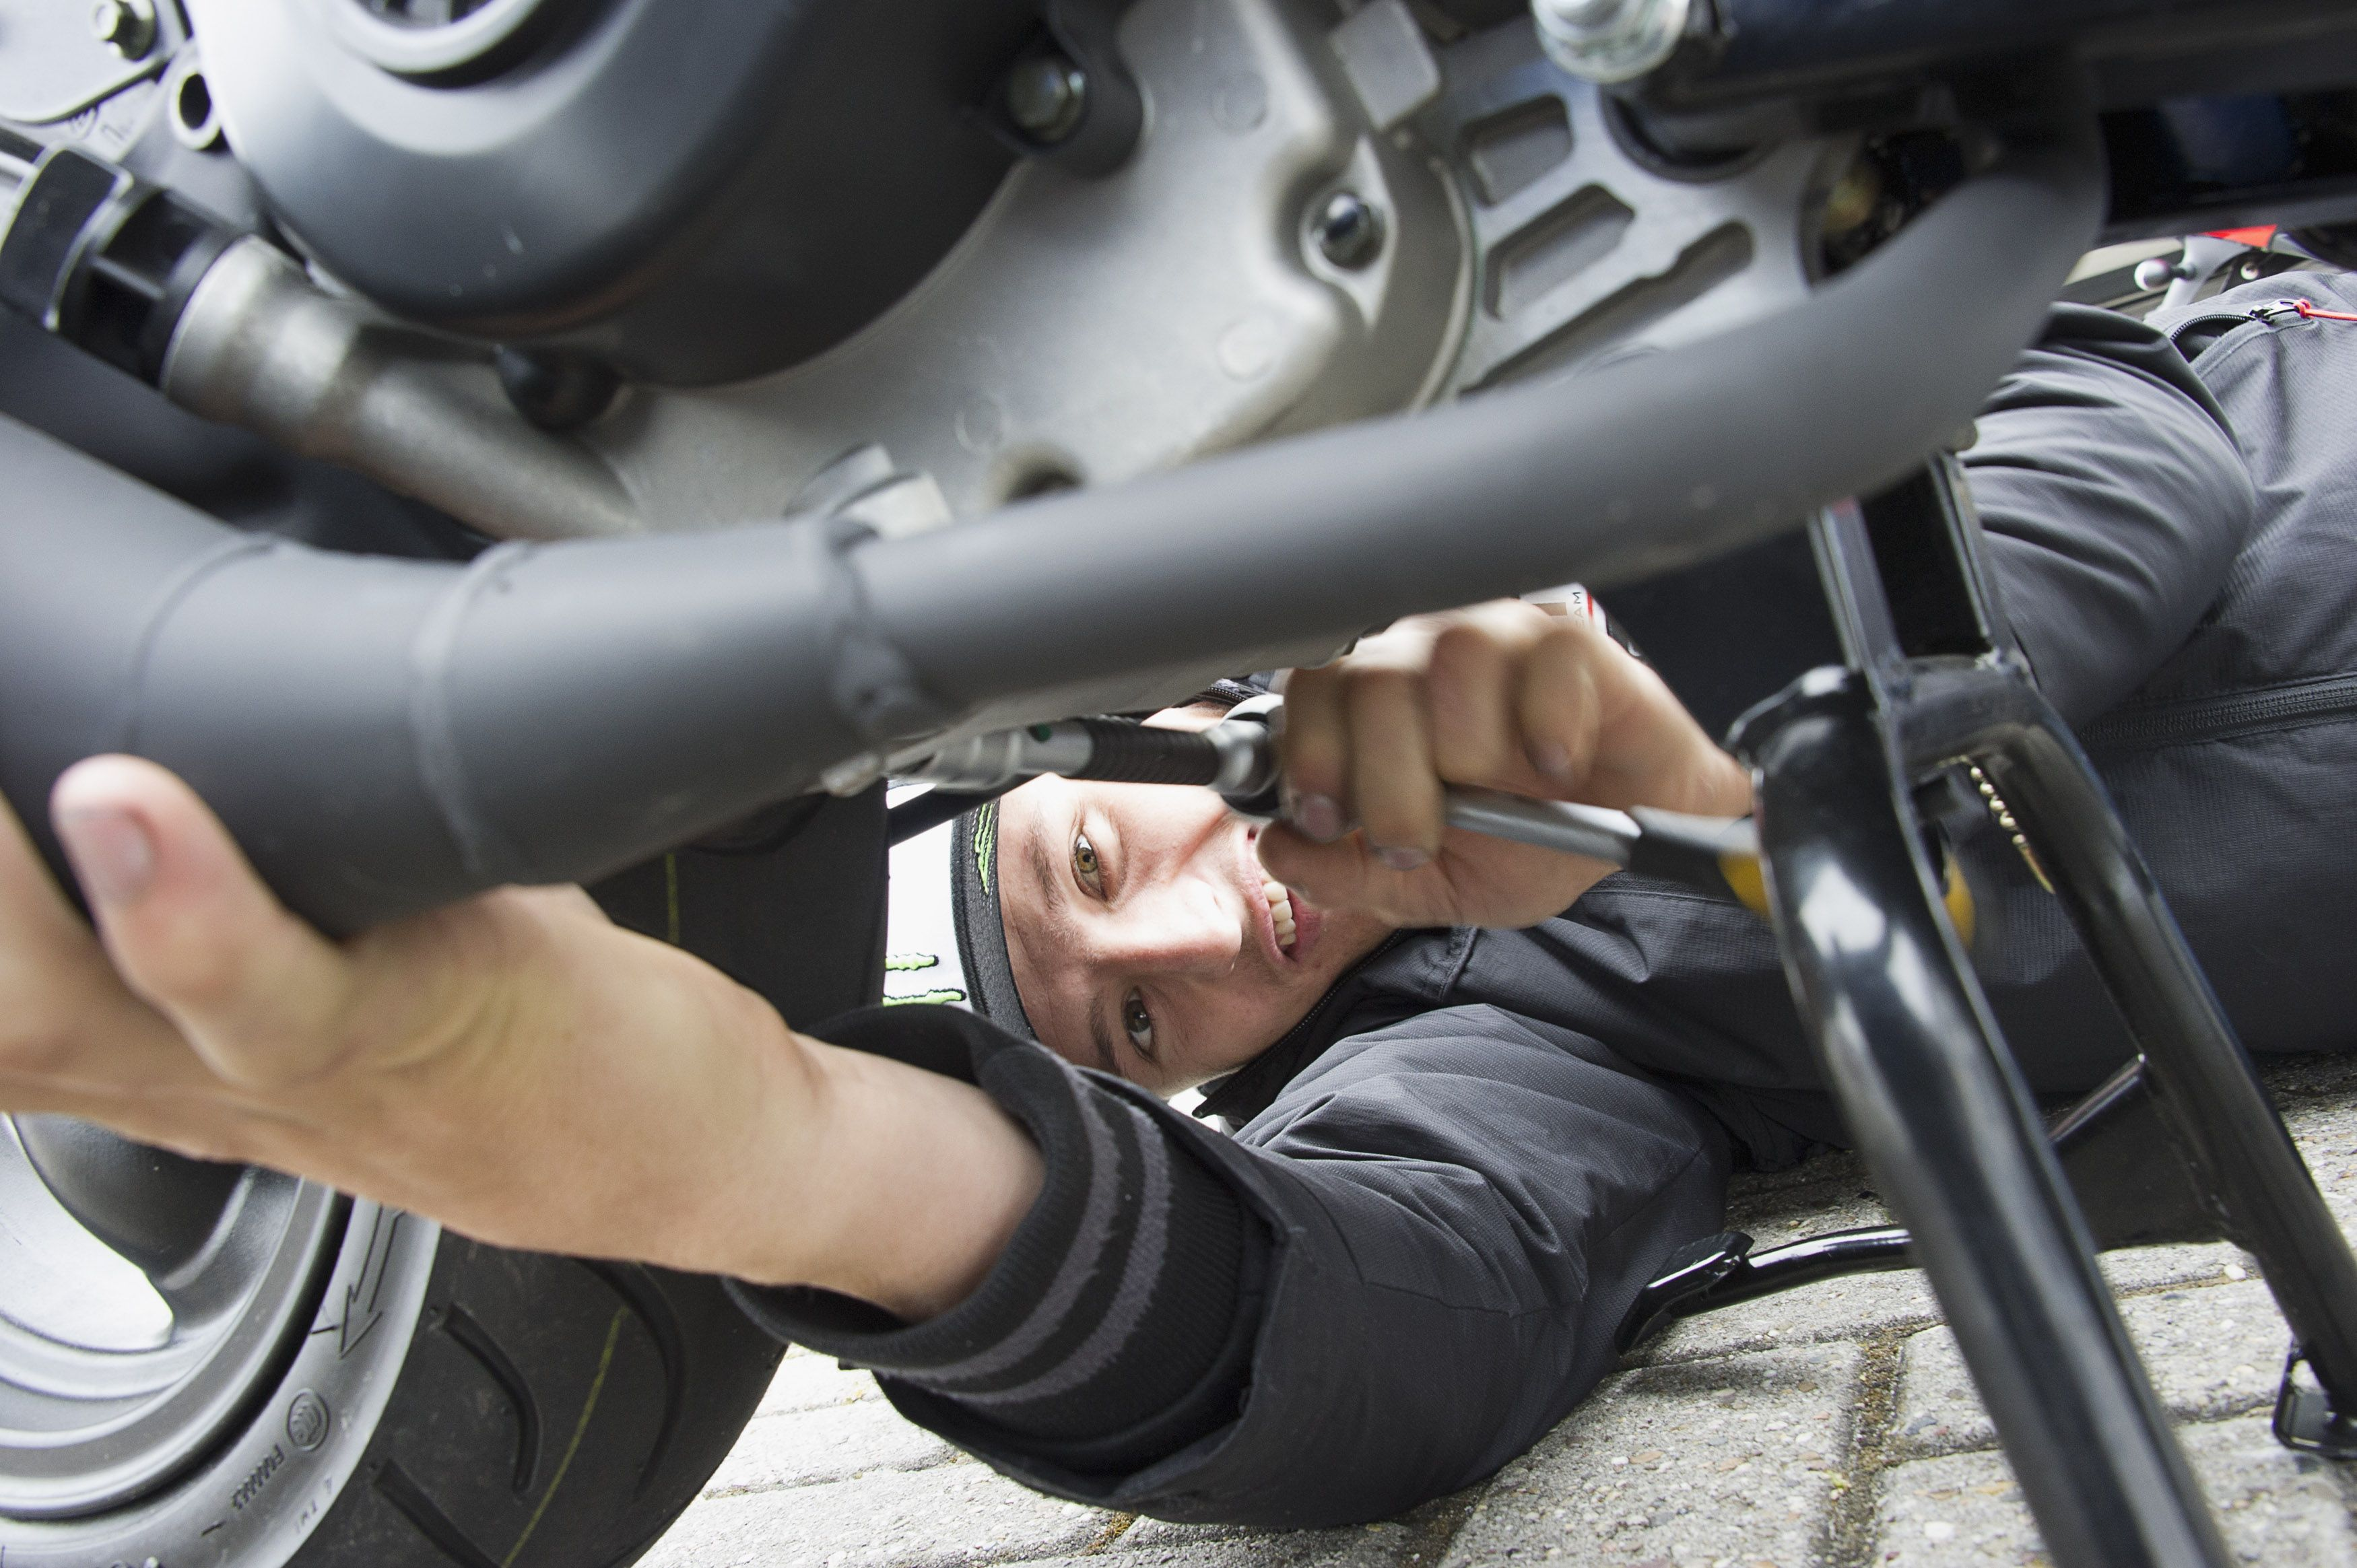 Get in touch with you nearest service center for bike